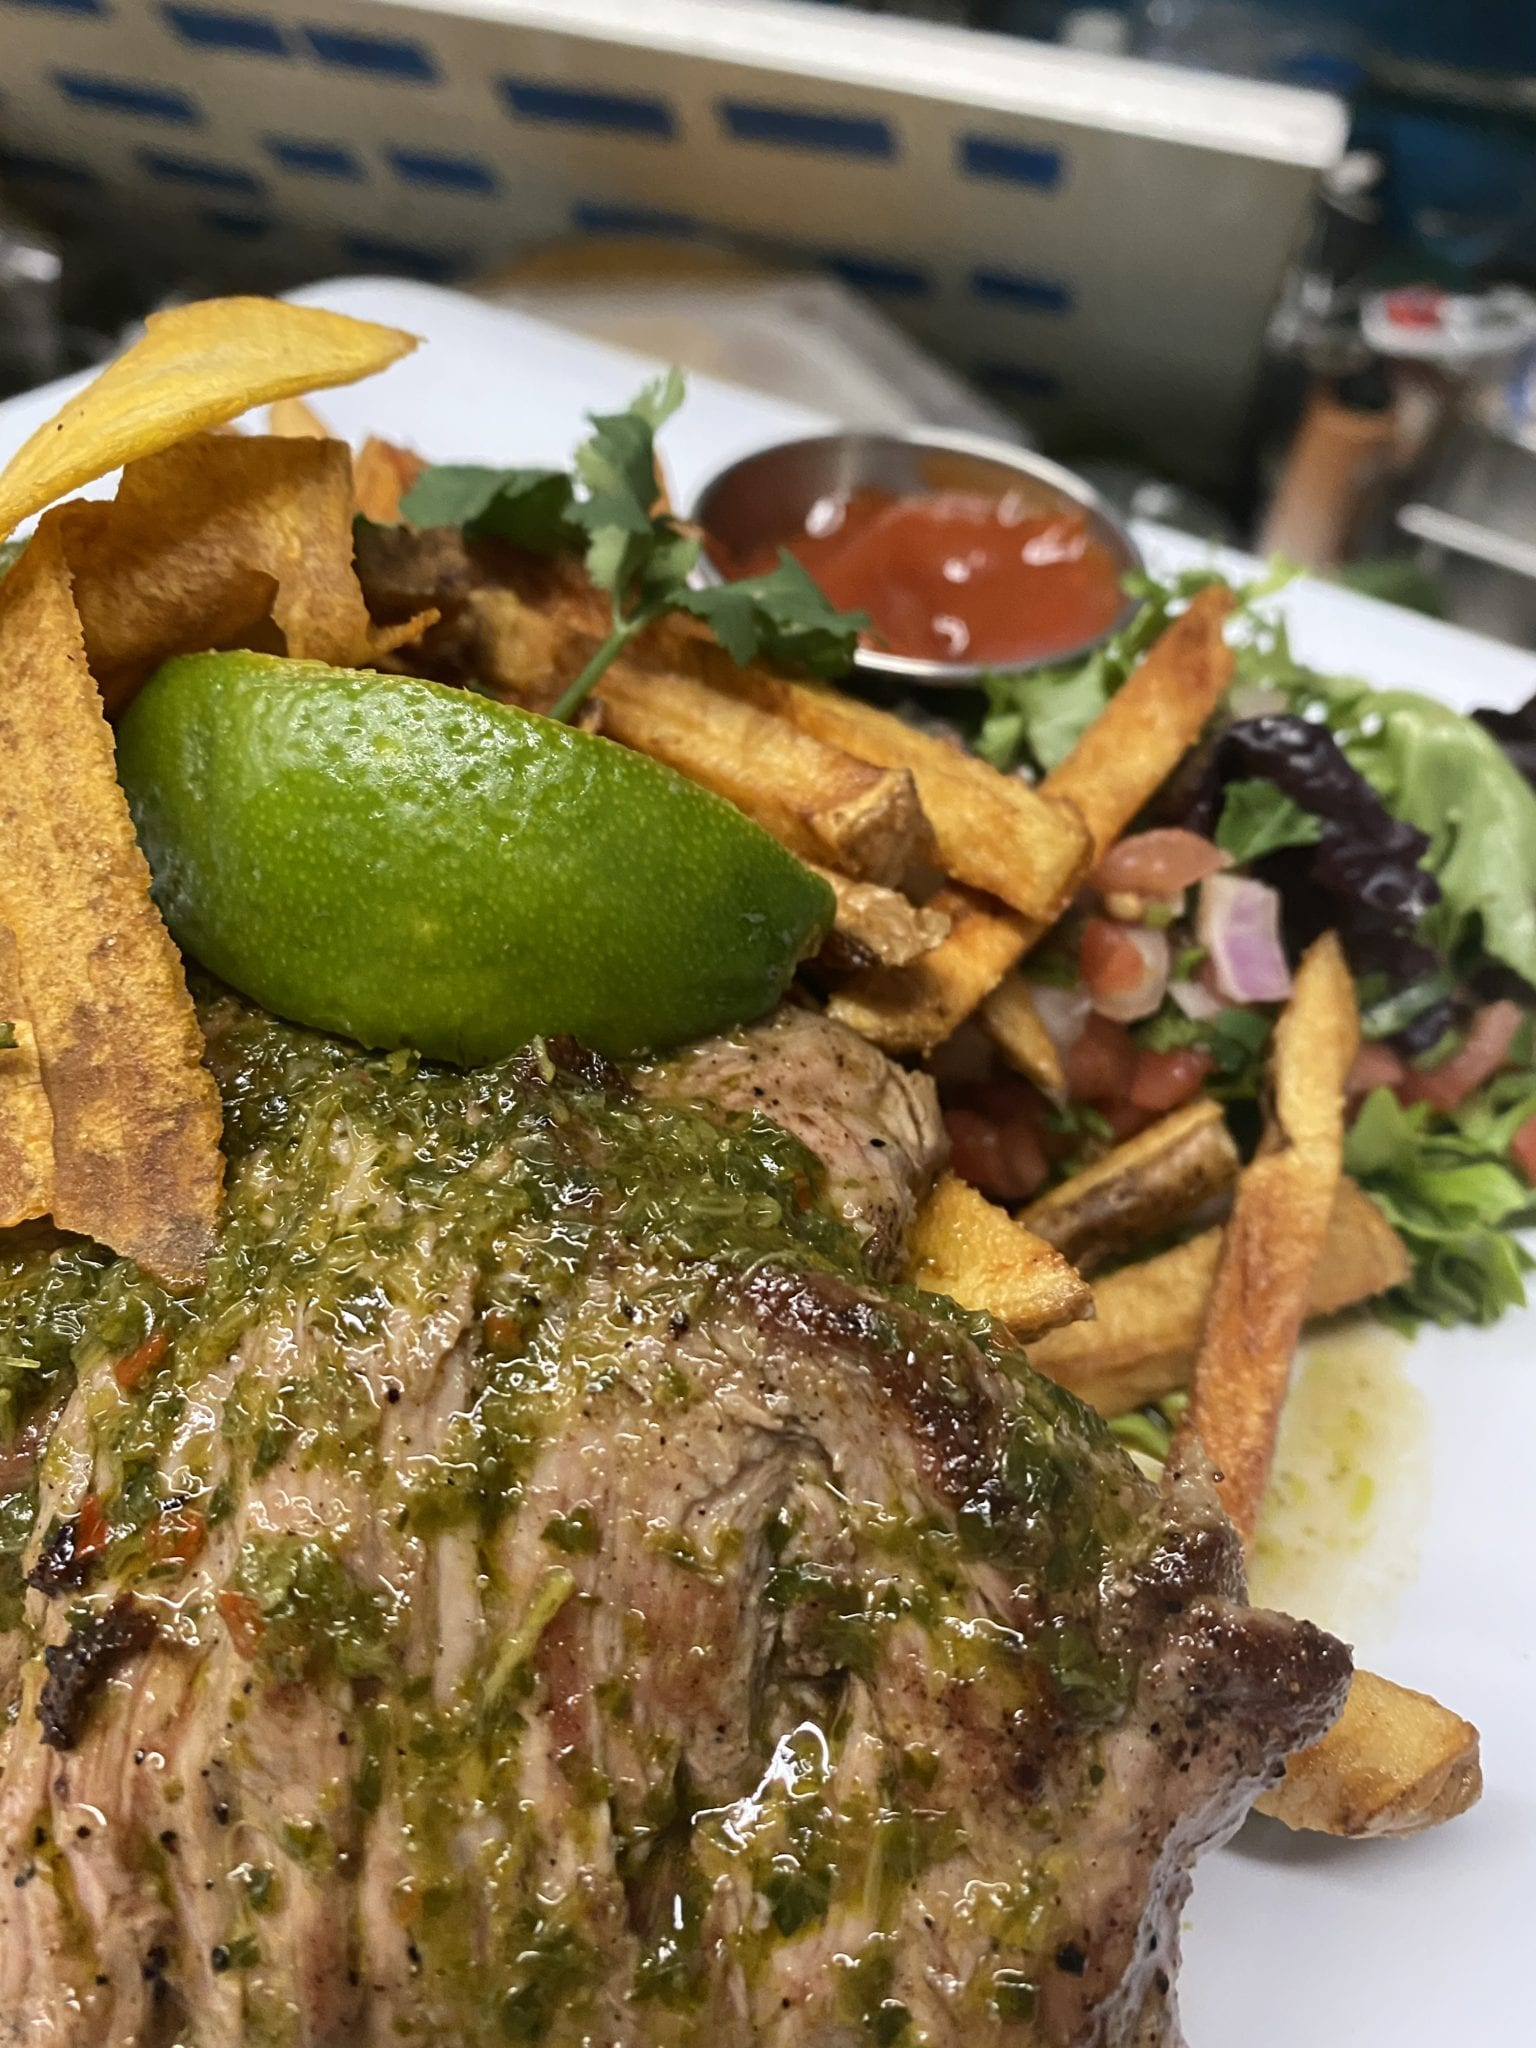 EL Churrasco with Chimichurri